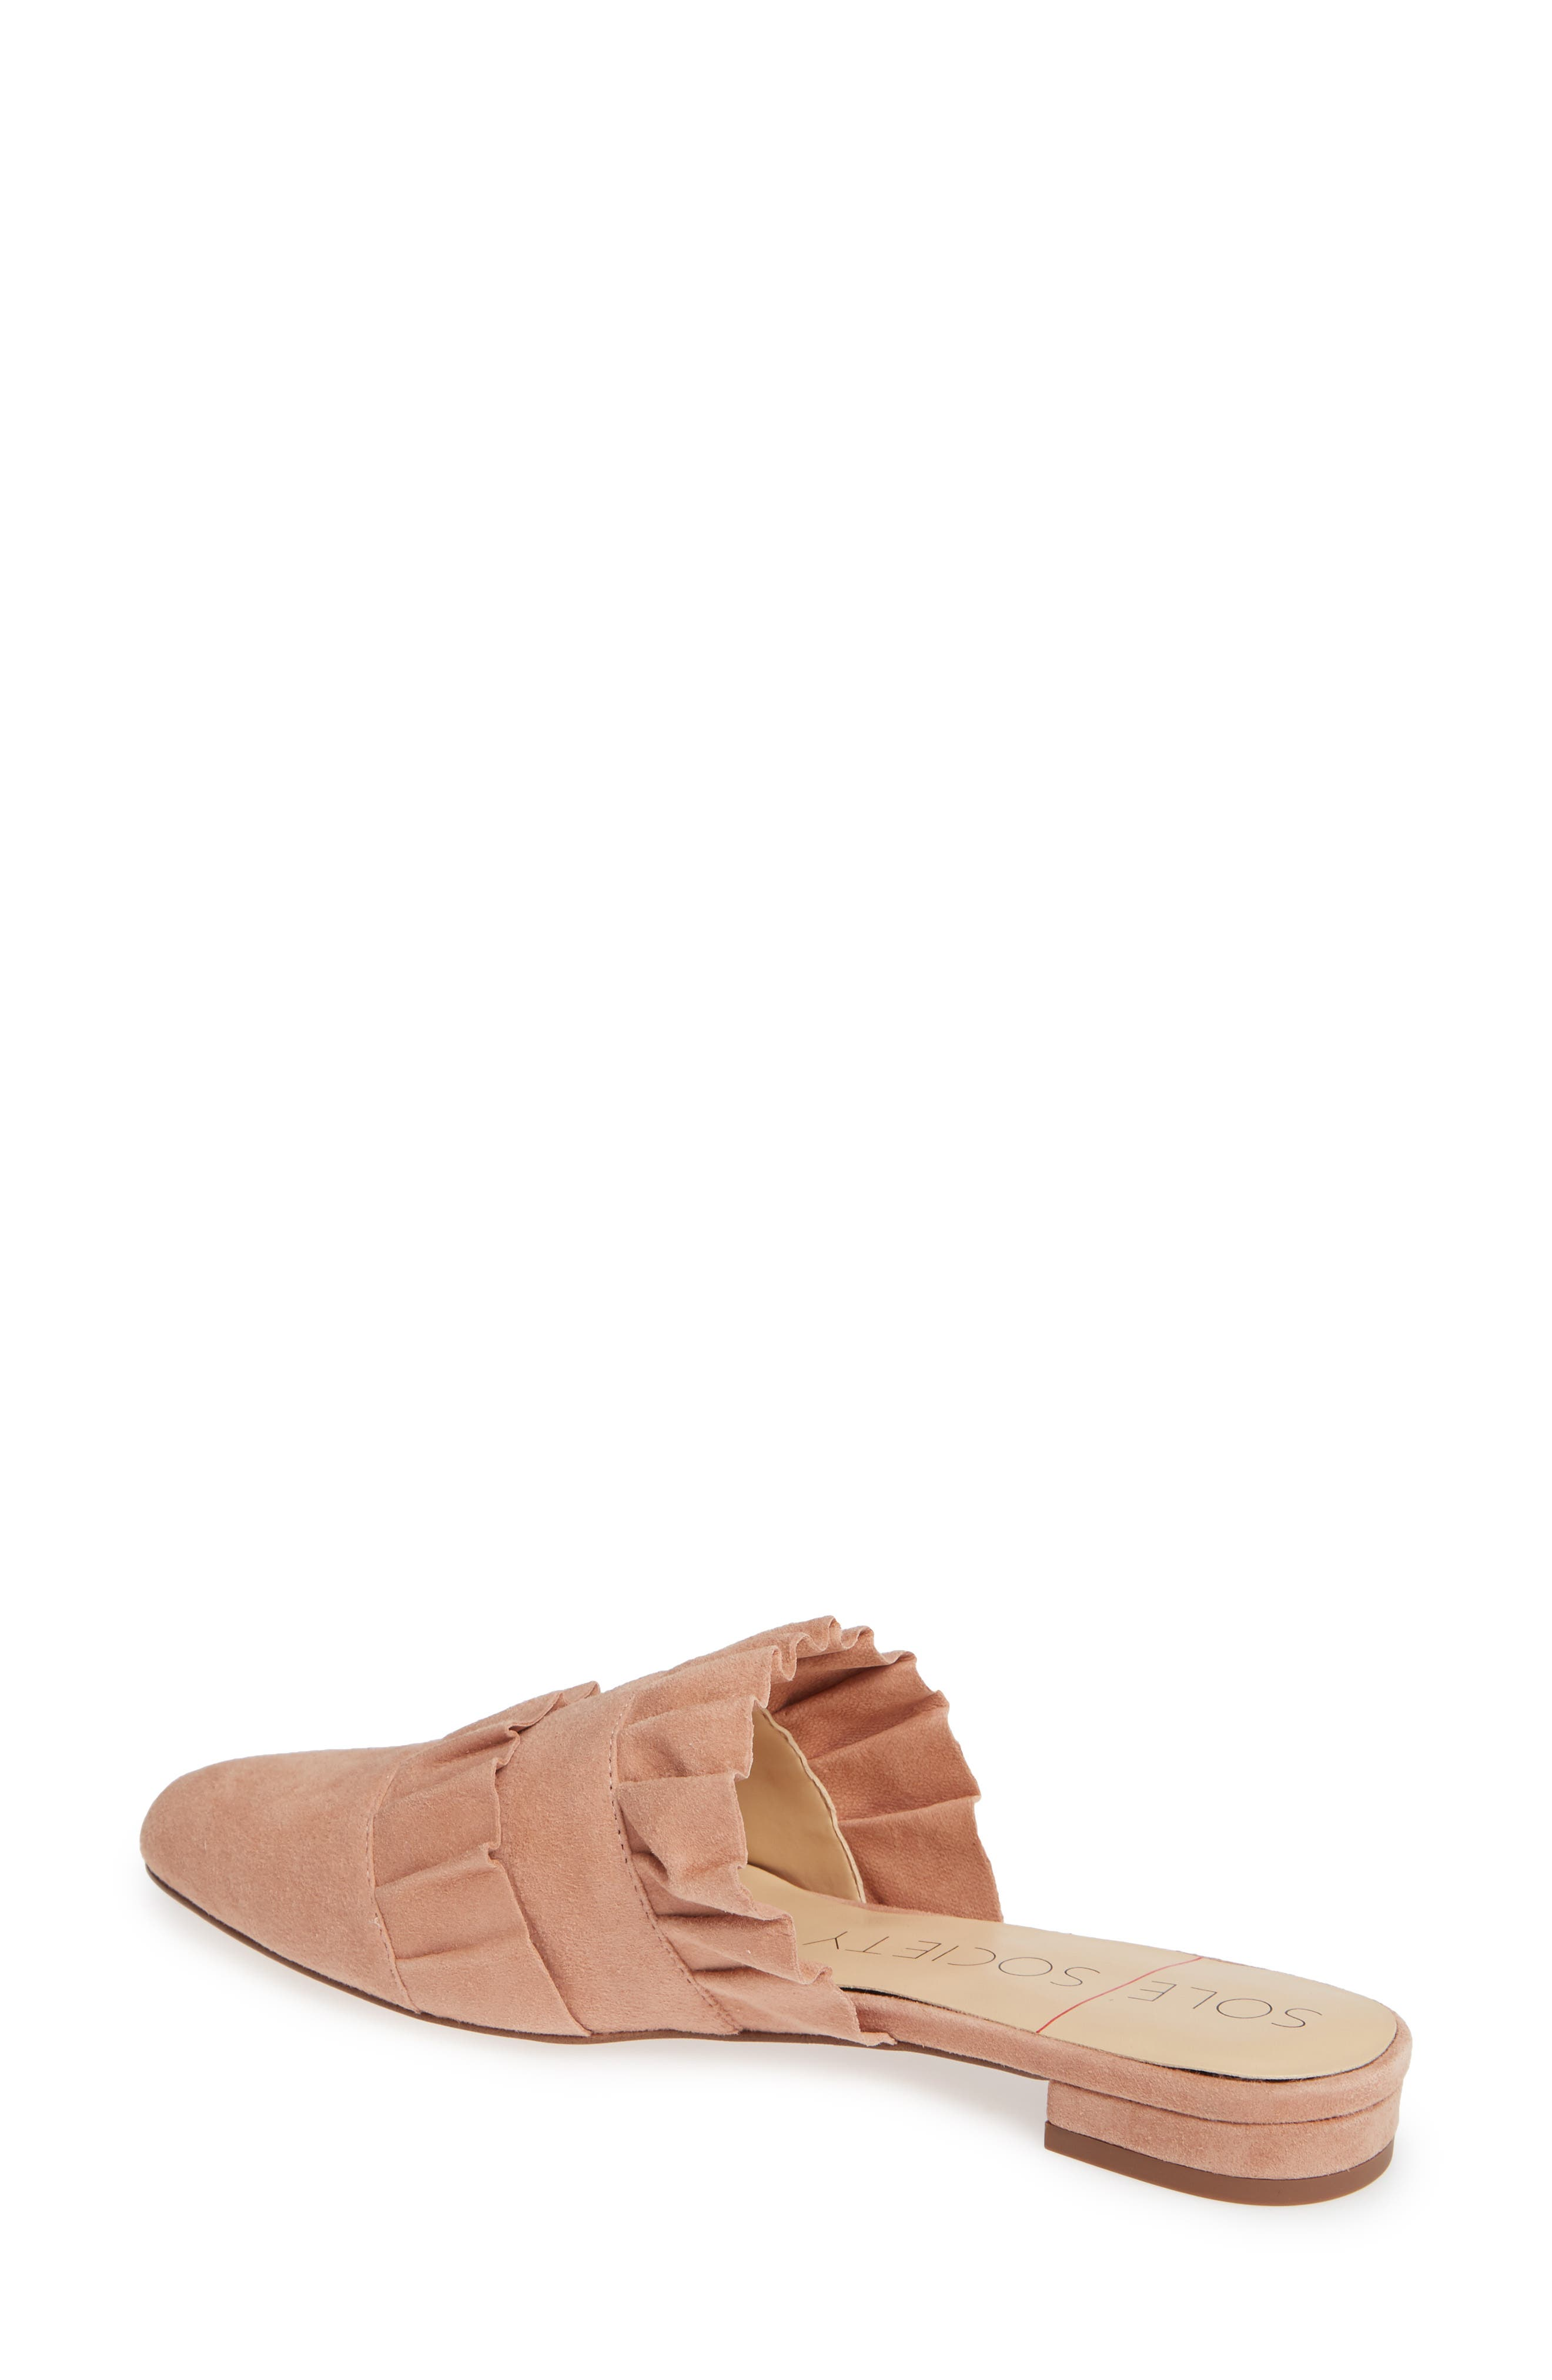 Pollina Mule,                             Alternate thumbnail 2, color,                             AGED ROSE SUEDE